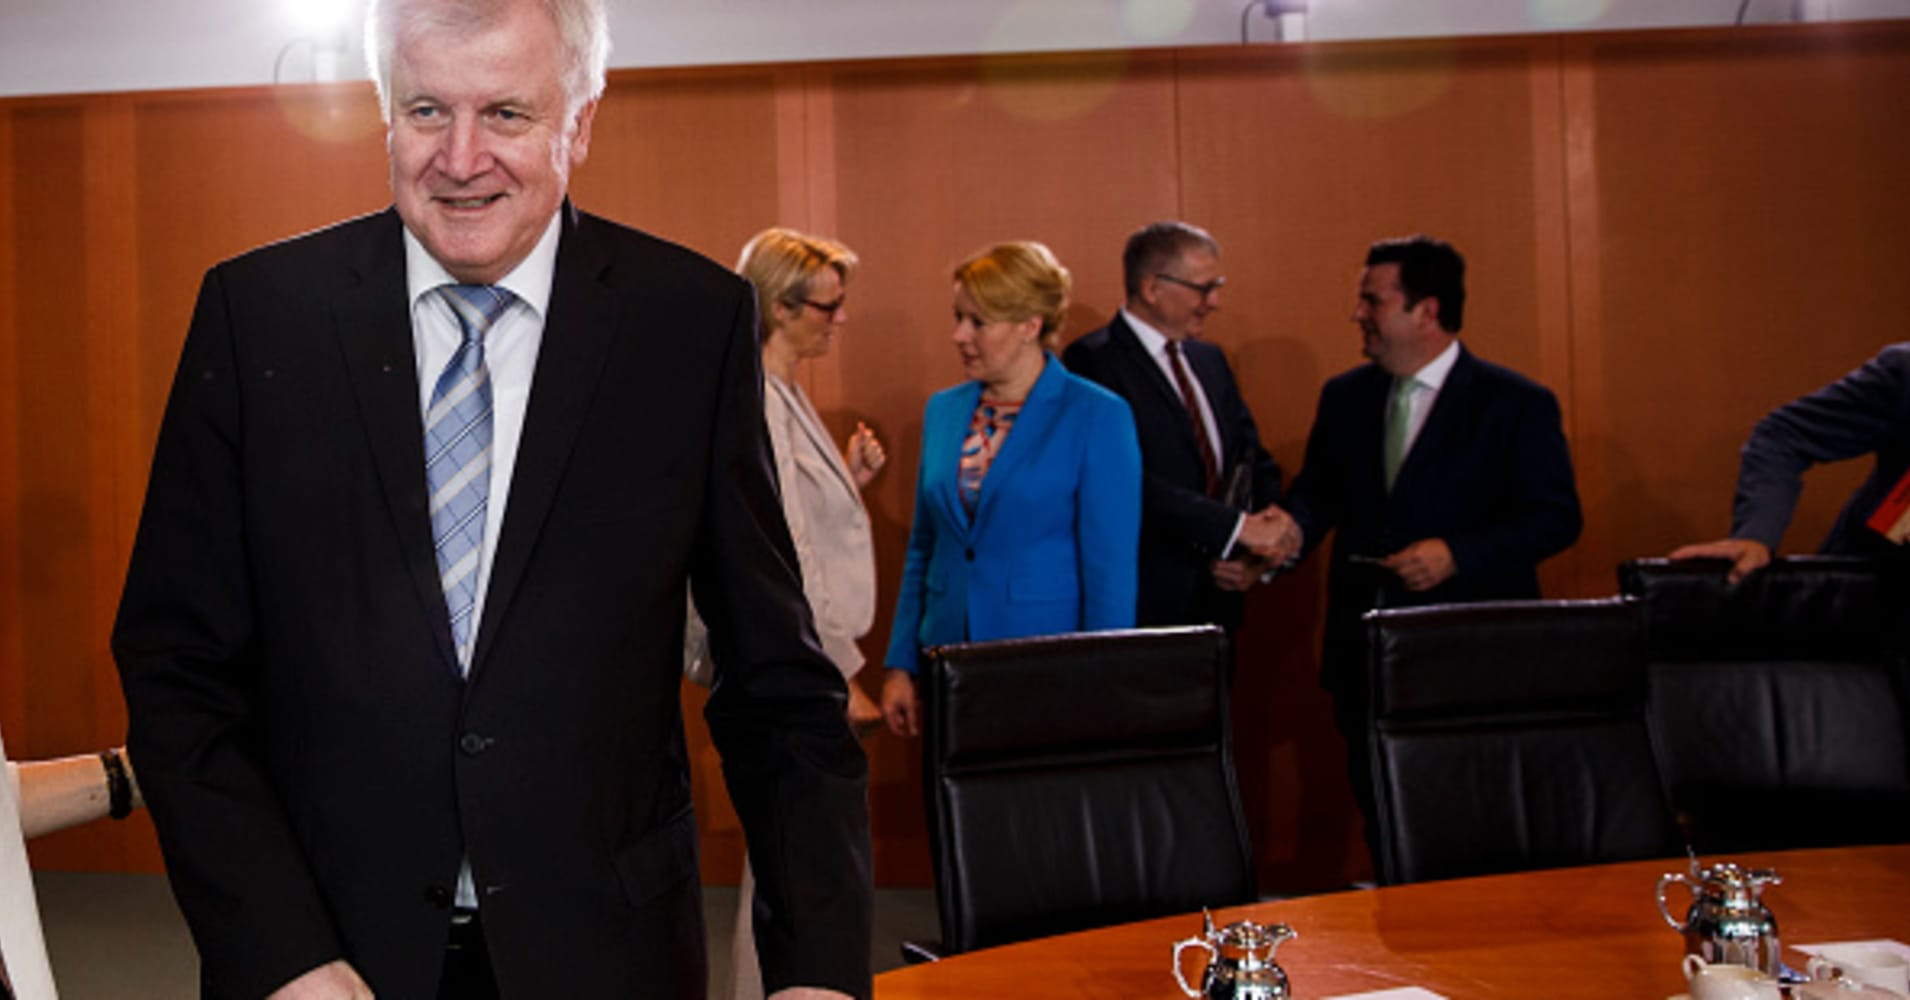 German Interior Minister Seehofer reportedly offers to resign